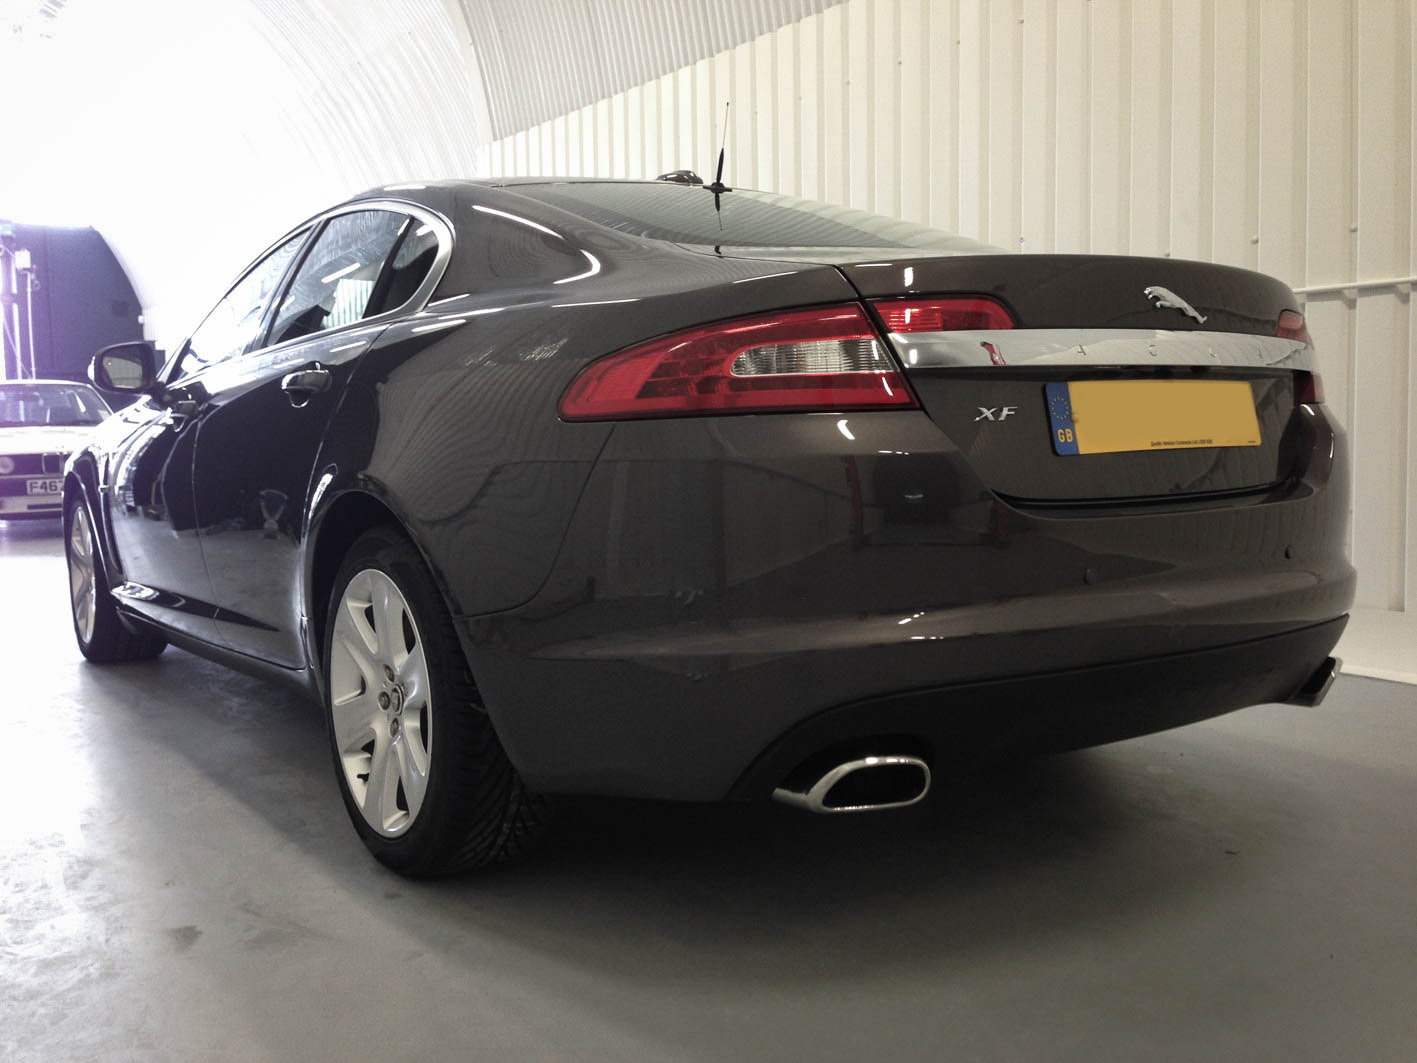 Jaguar XF – Rear